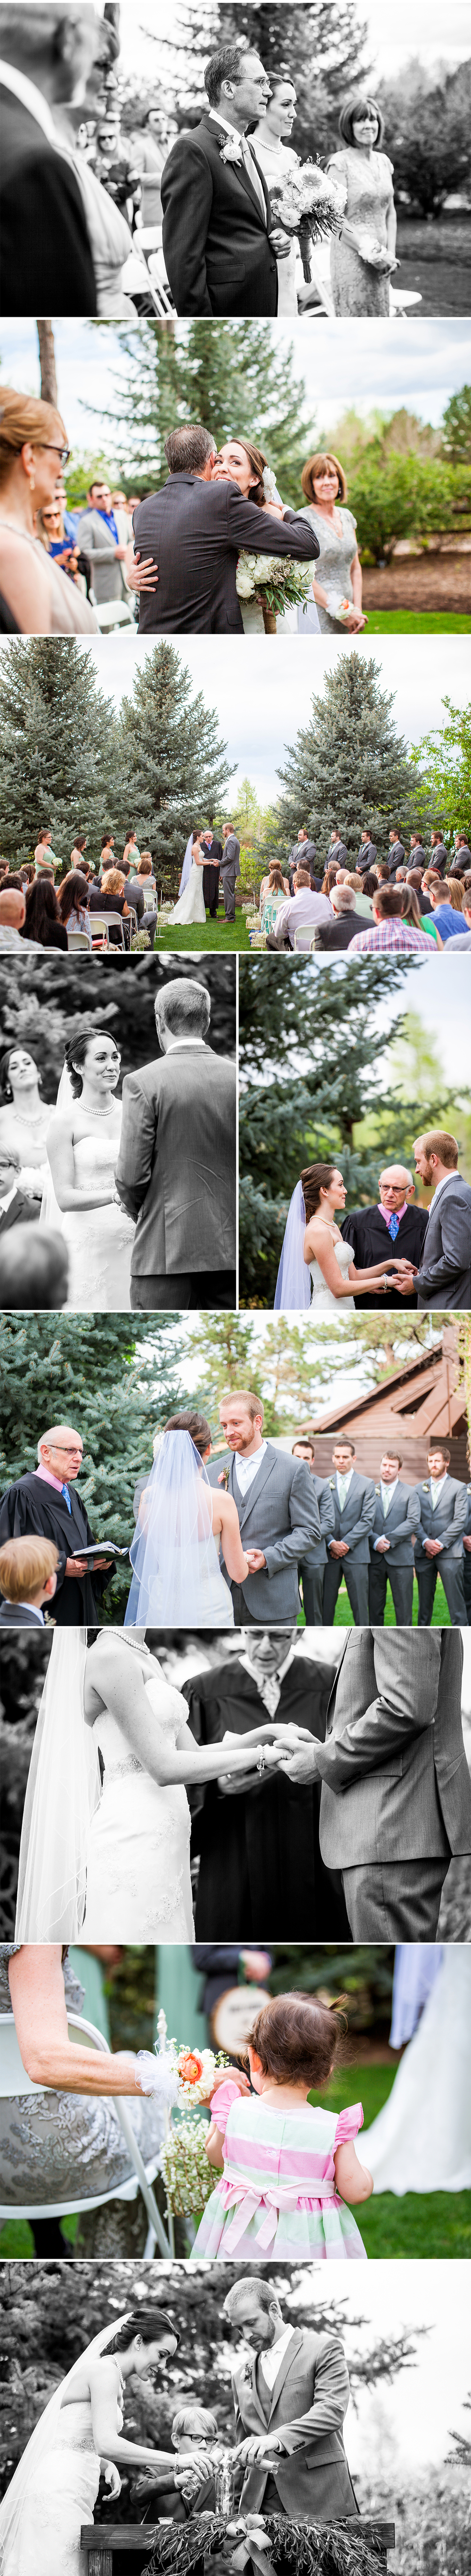 4_outdoor wedding photography denver.jpg